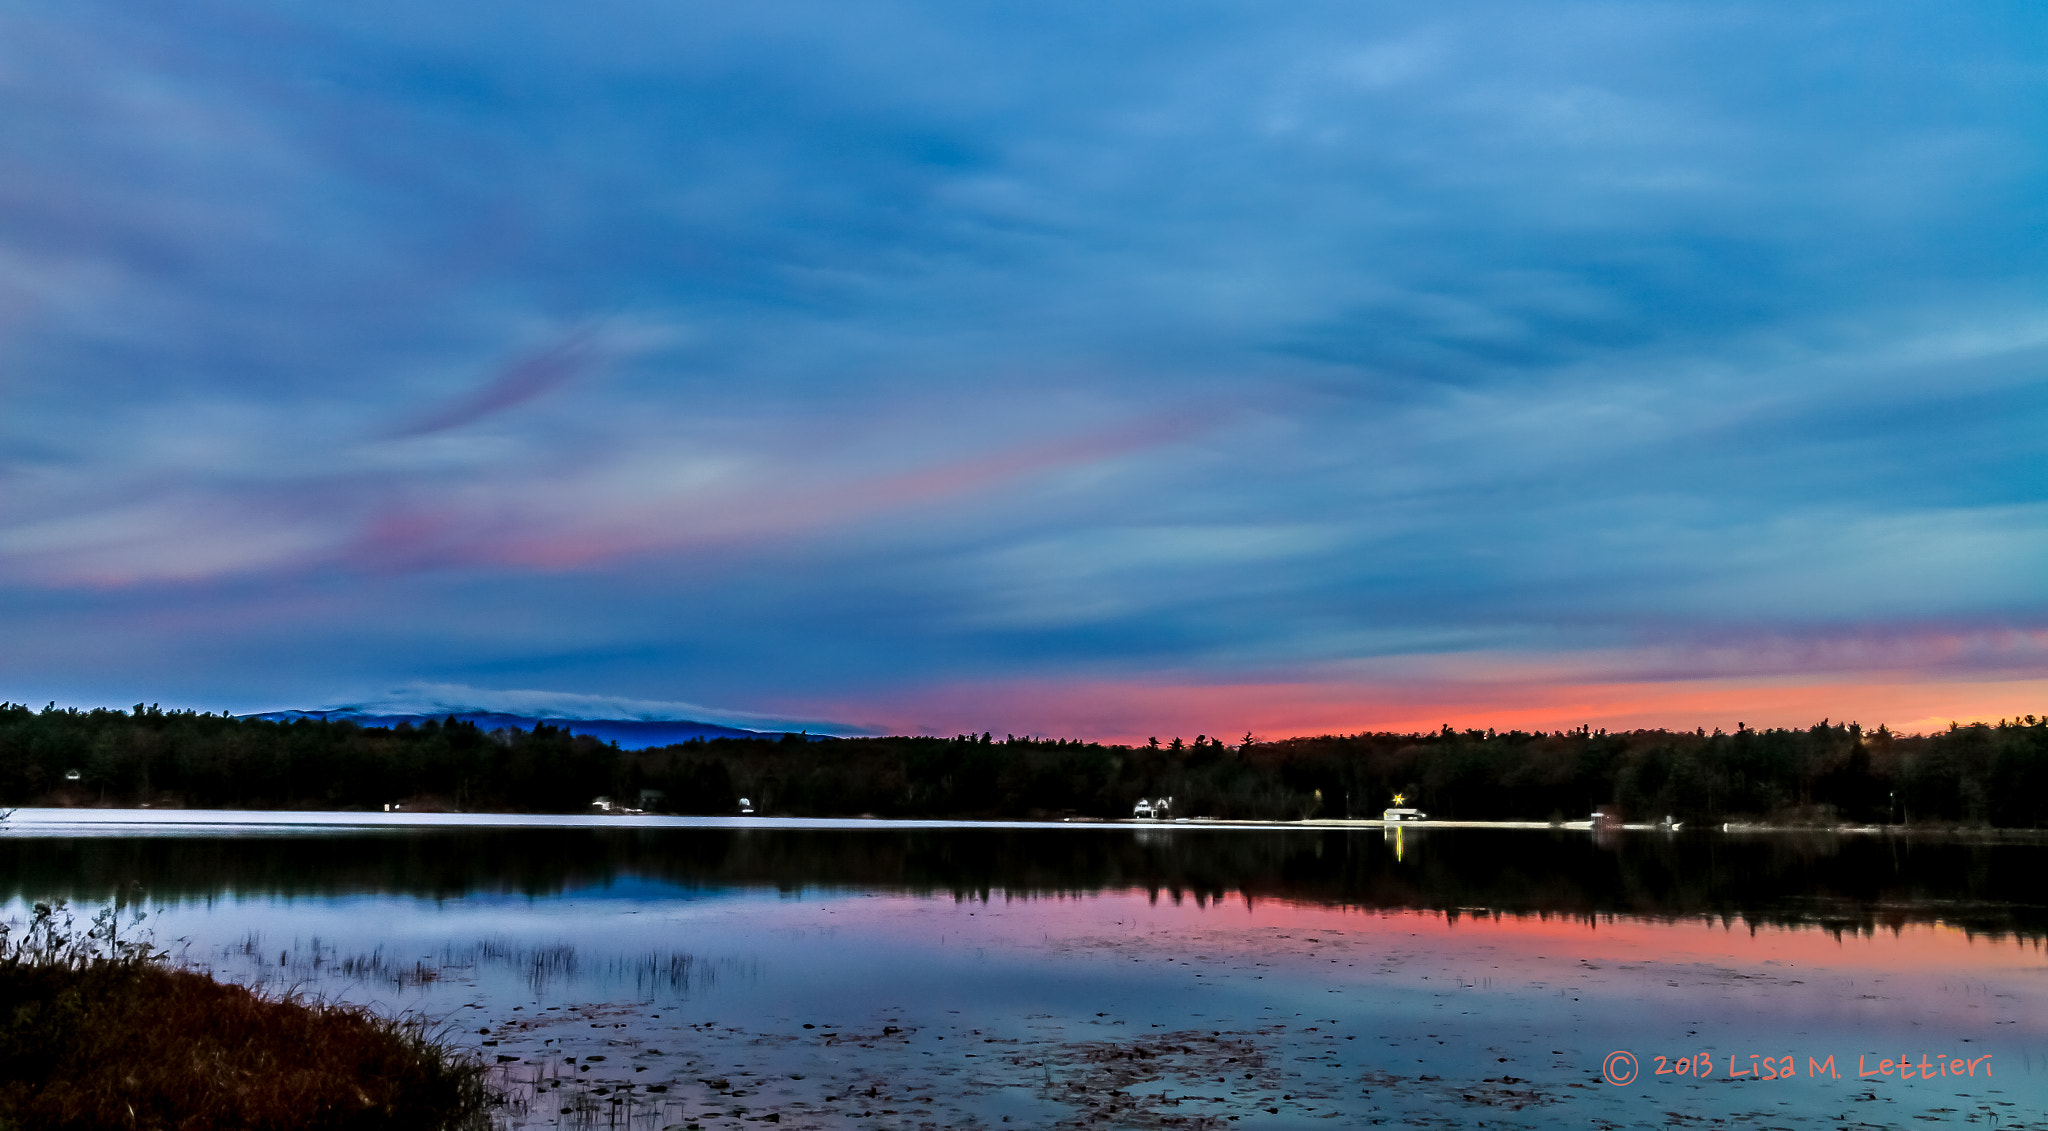 Photograph Morning Sky Over Lake Contoocook by Lisa Lettieri on 500px